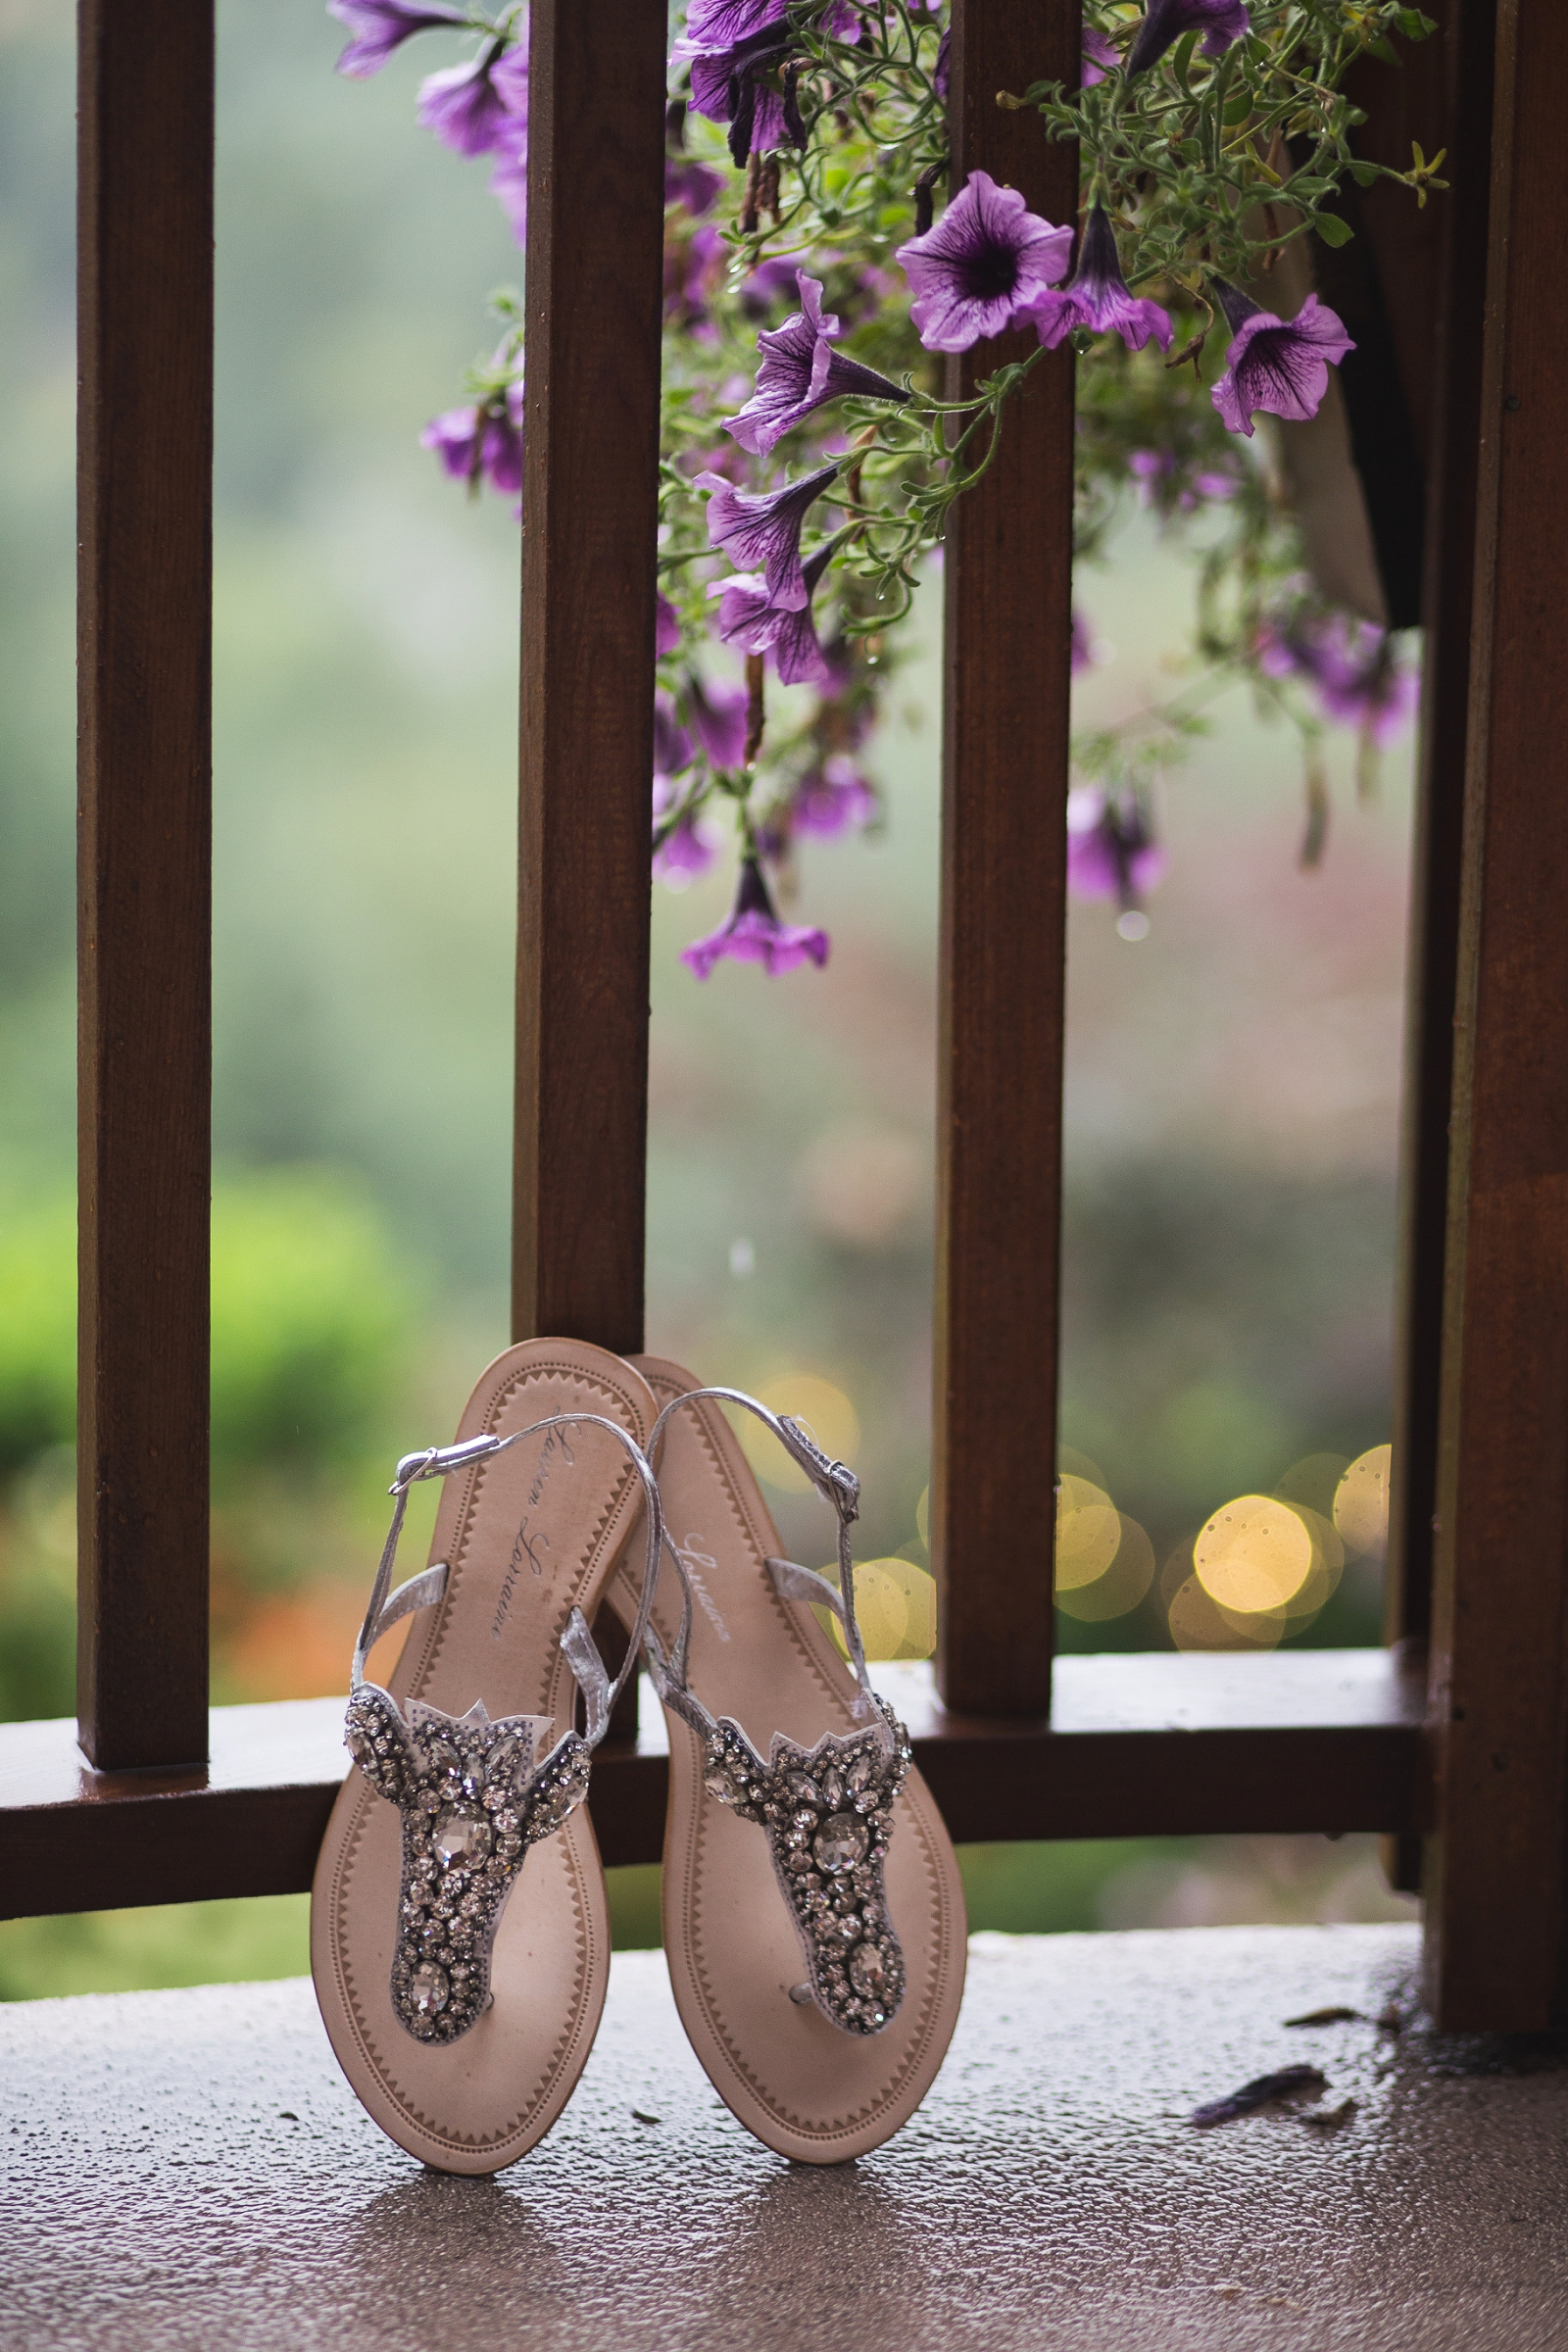 Lauren-lorraine-shoes-seattle-wedding-photographer-vannessa-kralovic.jpg